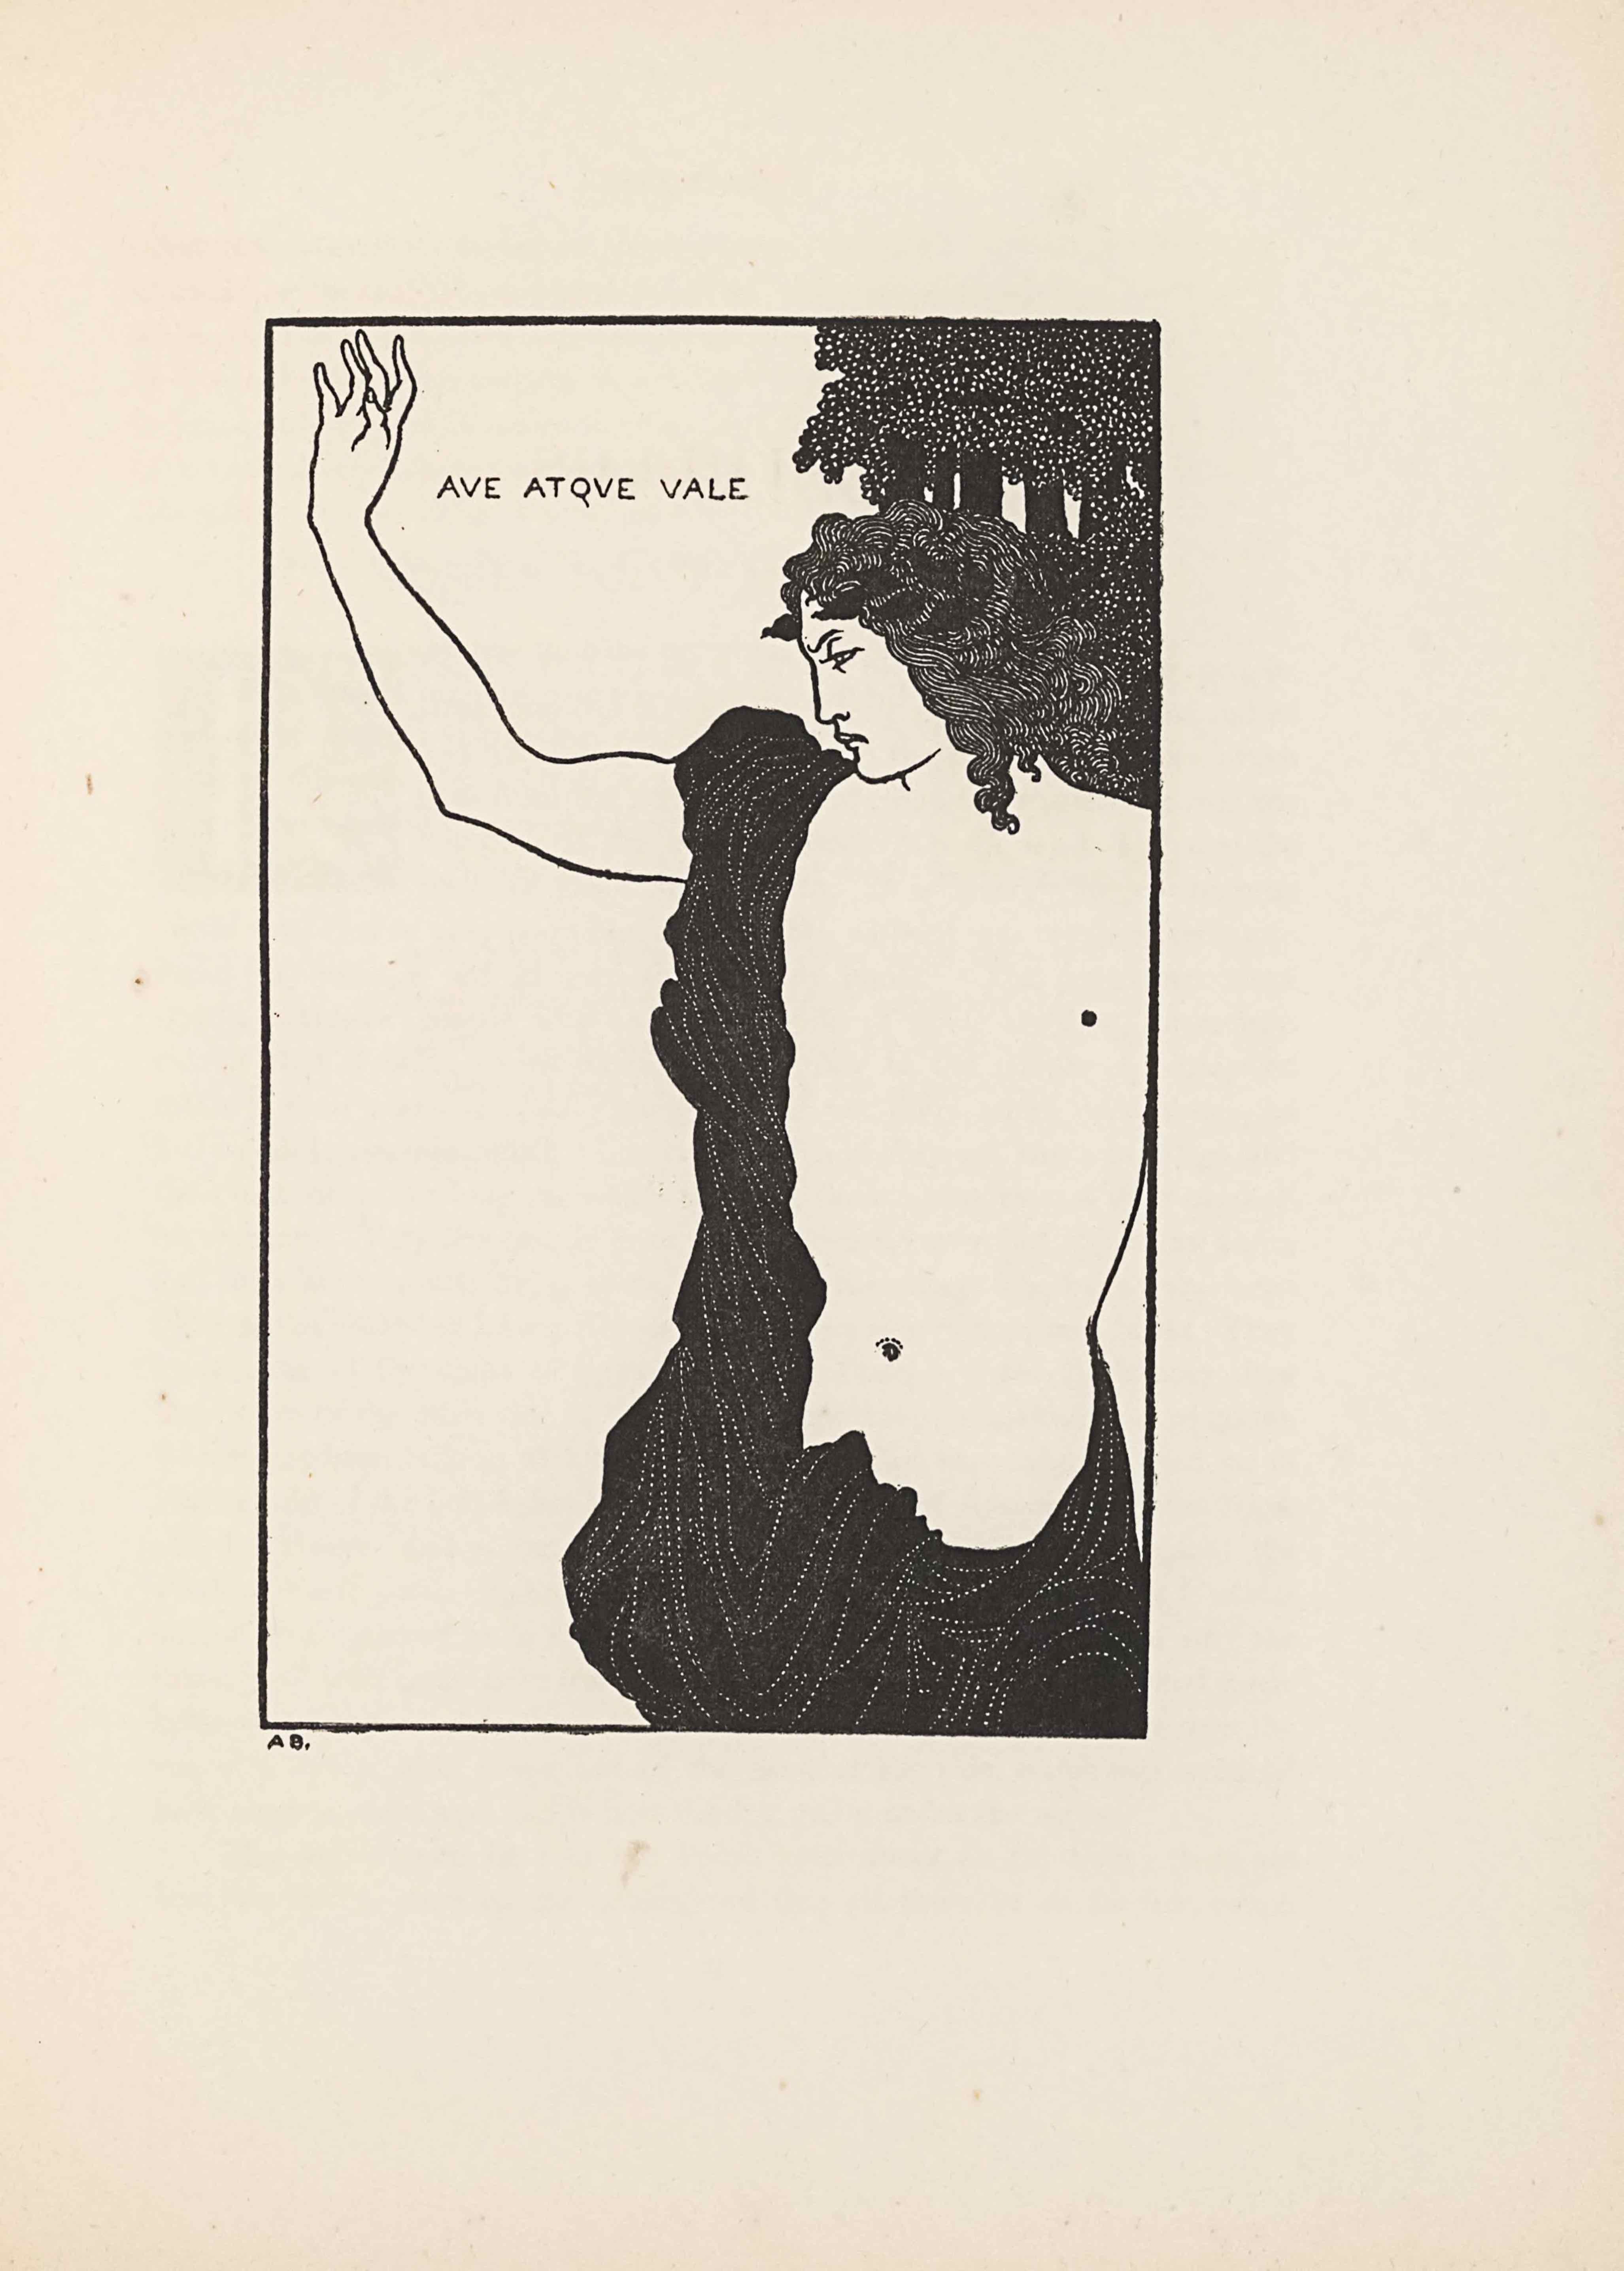 """The line-block reproduction of a pen-and-ink drawing by Beardsley is bordered by a rectangular box in portrait orientation and illustrates Beardsley's facing poem, """"Catullus,"""" on page 52. The title of the image is hand-lettered in the top left of the image; it reads: """"AVE ATQUE VALE"""" [caps]. This translates as """"Hail and Farewell,"""" the ending of one of the most well-known eulogies by the Latin poet, Catullus (Carmen 101), which Beardsley translates into English verse. The illustration is of a classical male figure who takes up almost all of the right side of the picture plane. He is bare-chested, but wearing a black toga that covers his lower half and his right side, extending over the top of his right shoulder. His right arm is extended away from his body, bent at the elbow in a gesture of farewell. The figure's body is facing towards the viewer, but his head is turned right. He has curling hair that extends just past his shoulders. Directly behind the figure's head in the upper right corner, stands a thicket of trees. They consist of black trunks and white dotted leaves. The artist's initials are printed in the bottom left corner below the border: """"A.B"""" [caps]."""